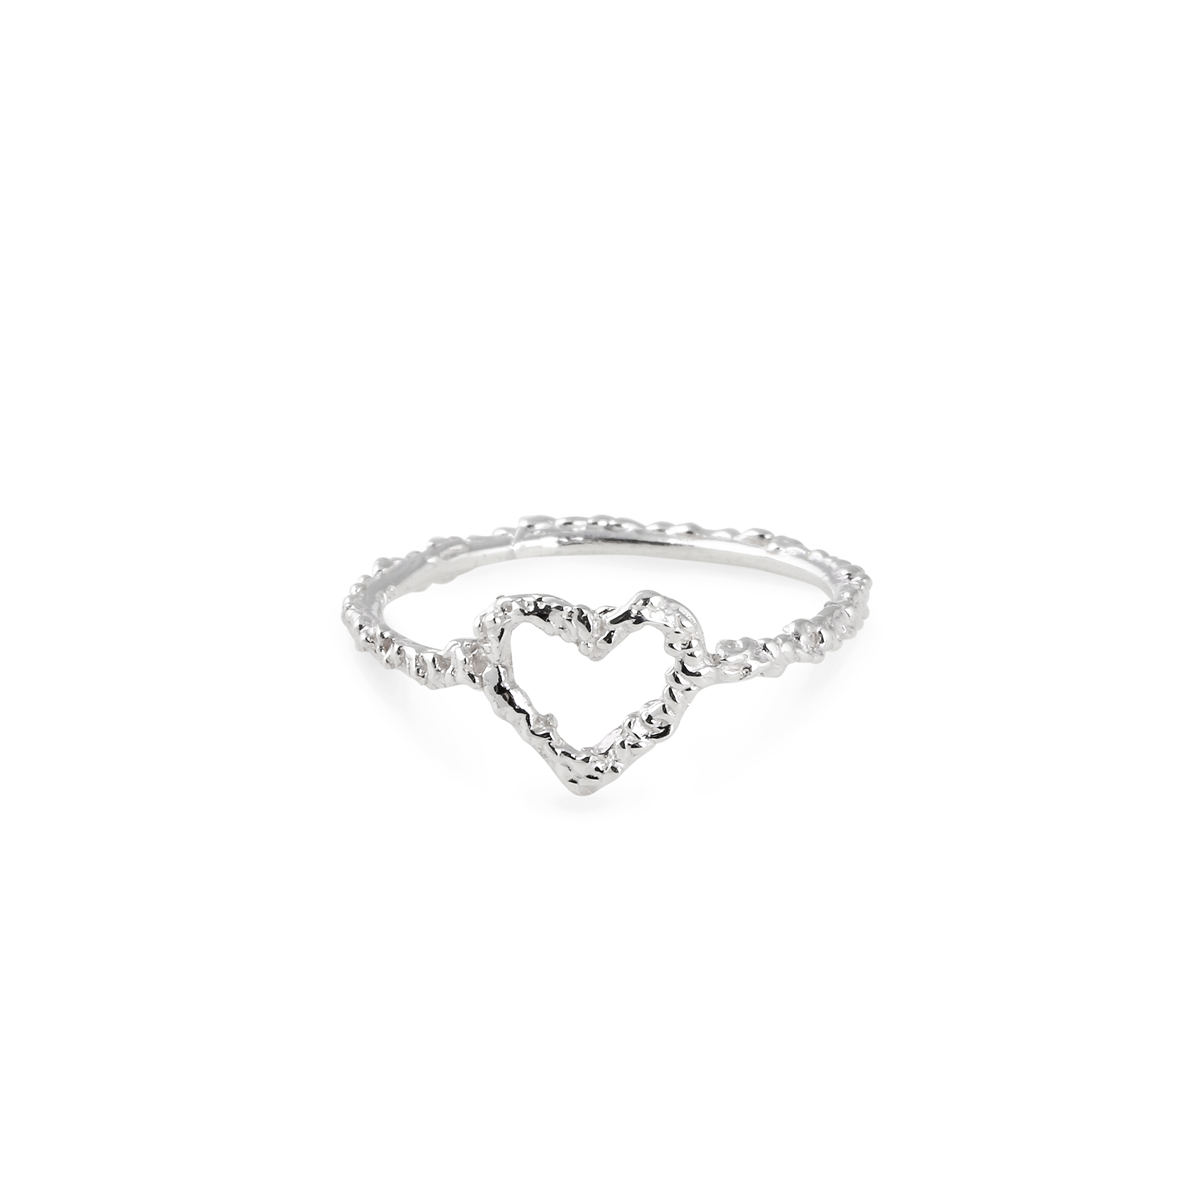 Silver Heart Ring in the group RINGS at EMMA ISRAELSSON (ring028)